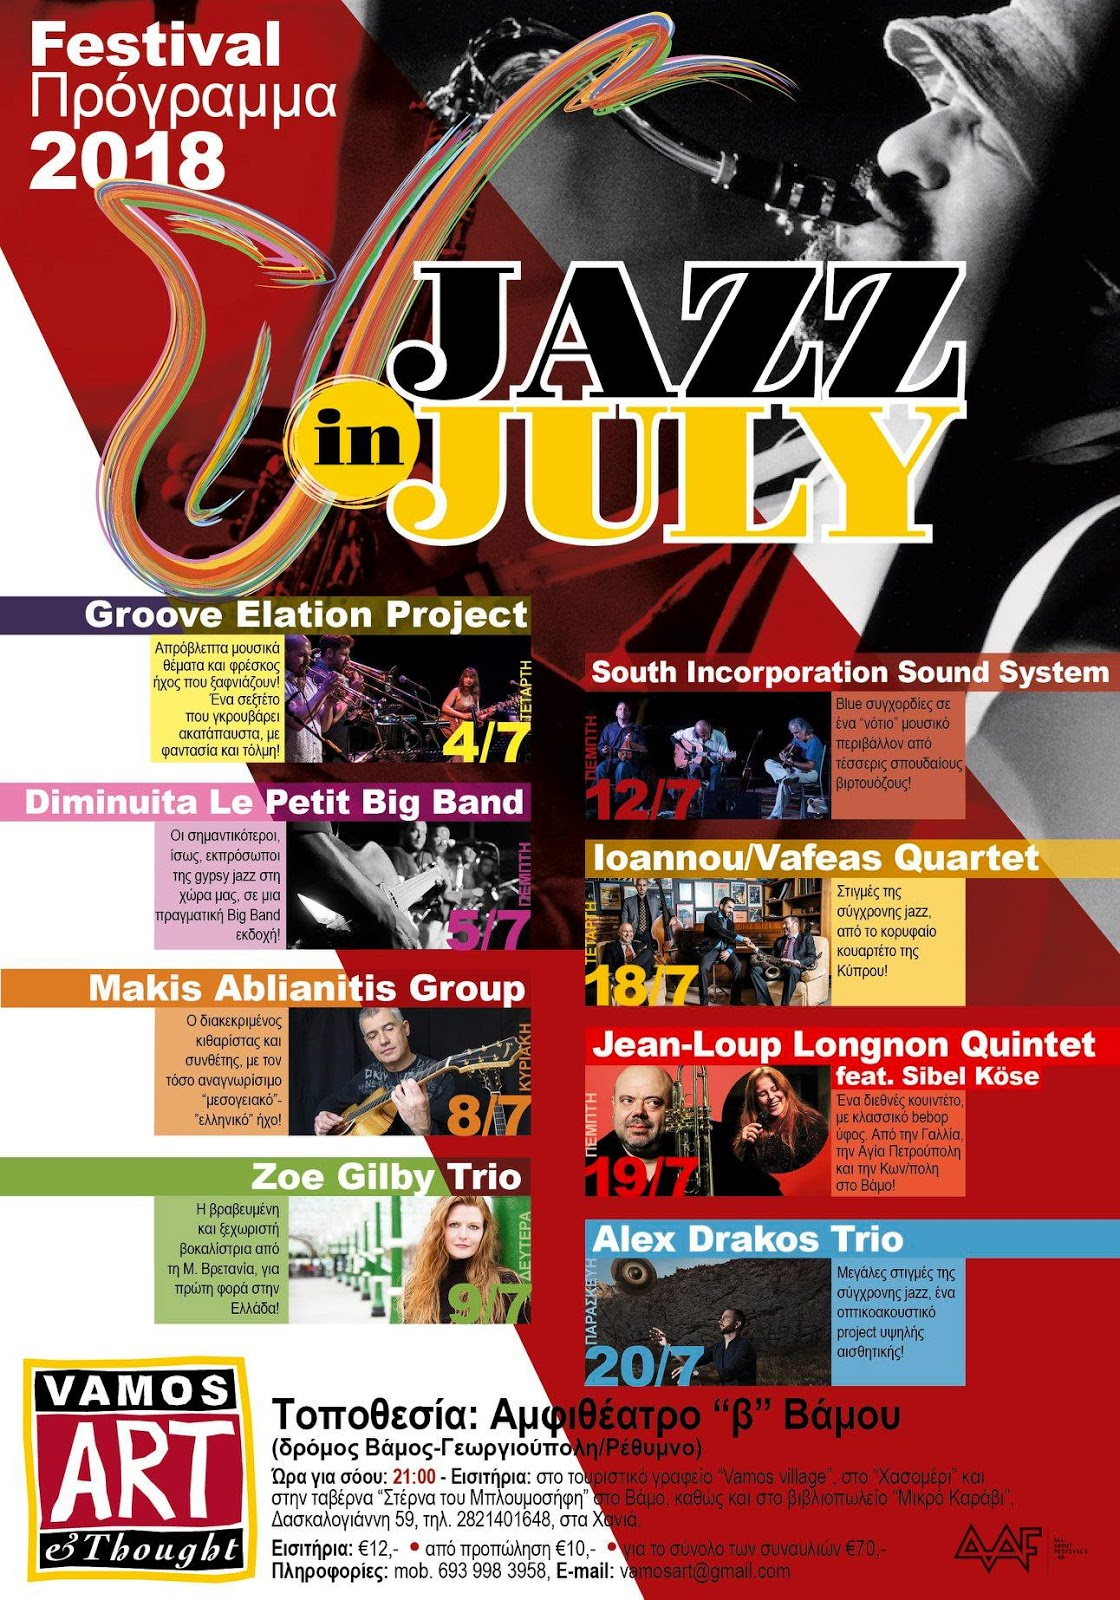 7 Jazz in July festival 2018